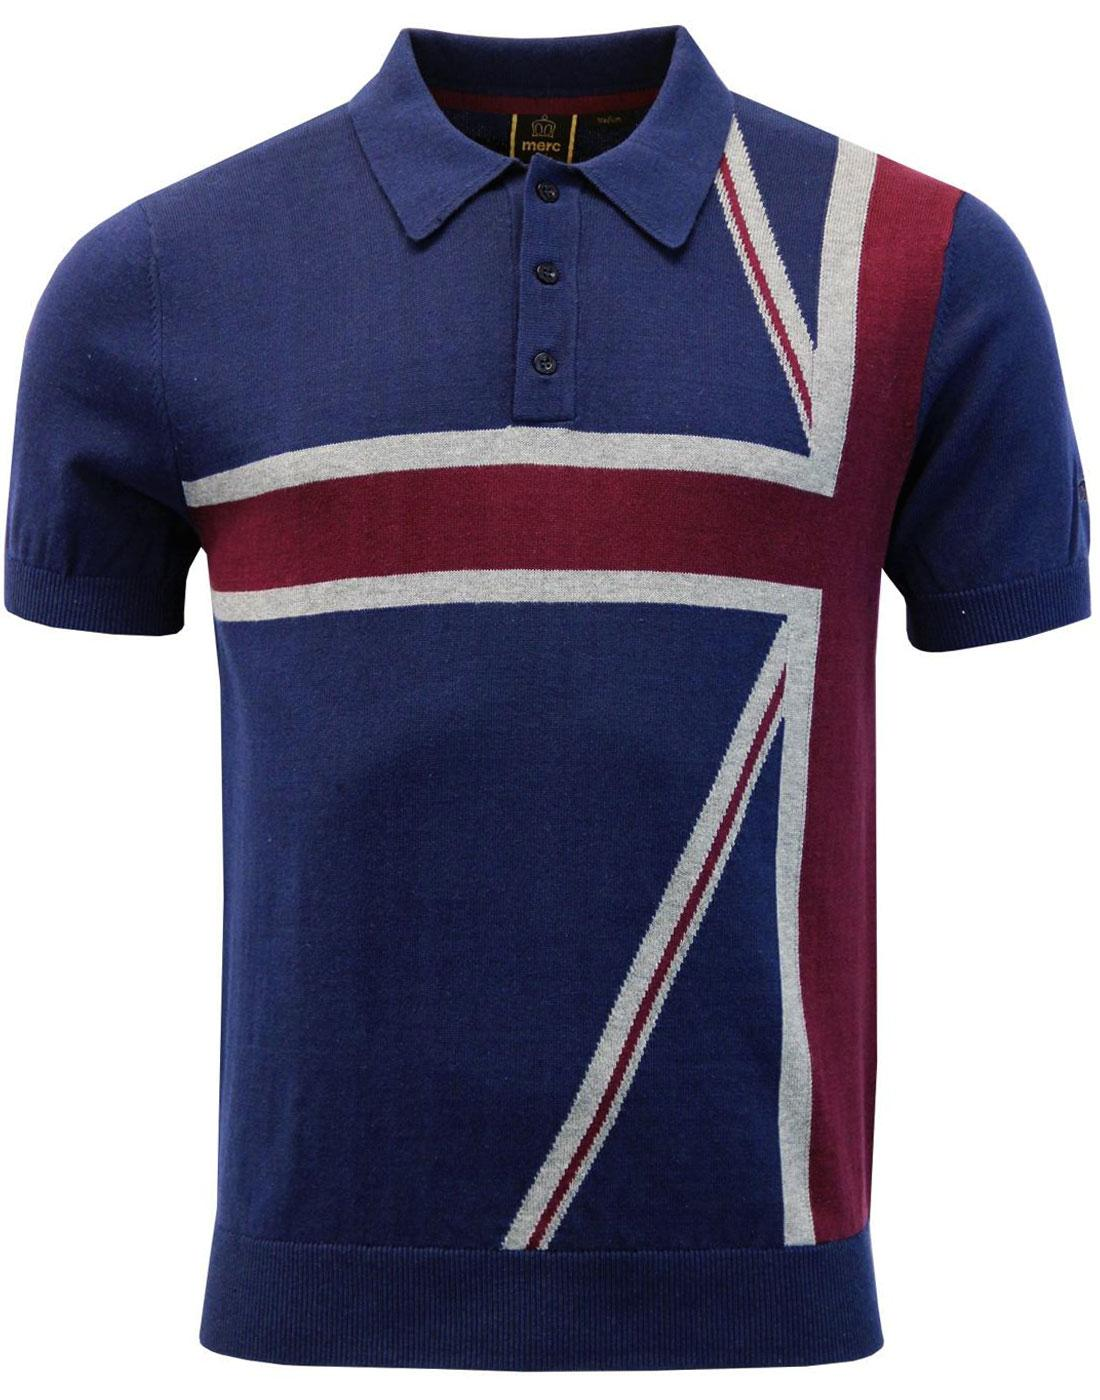 Castle MERC Retro Mod Union Jack Knitted Polo Top